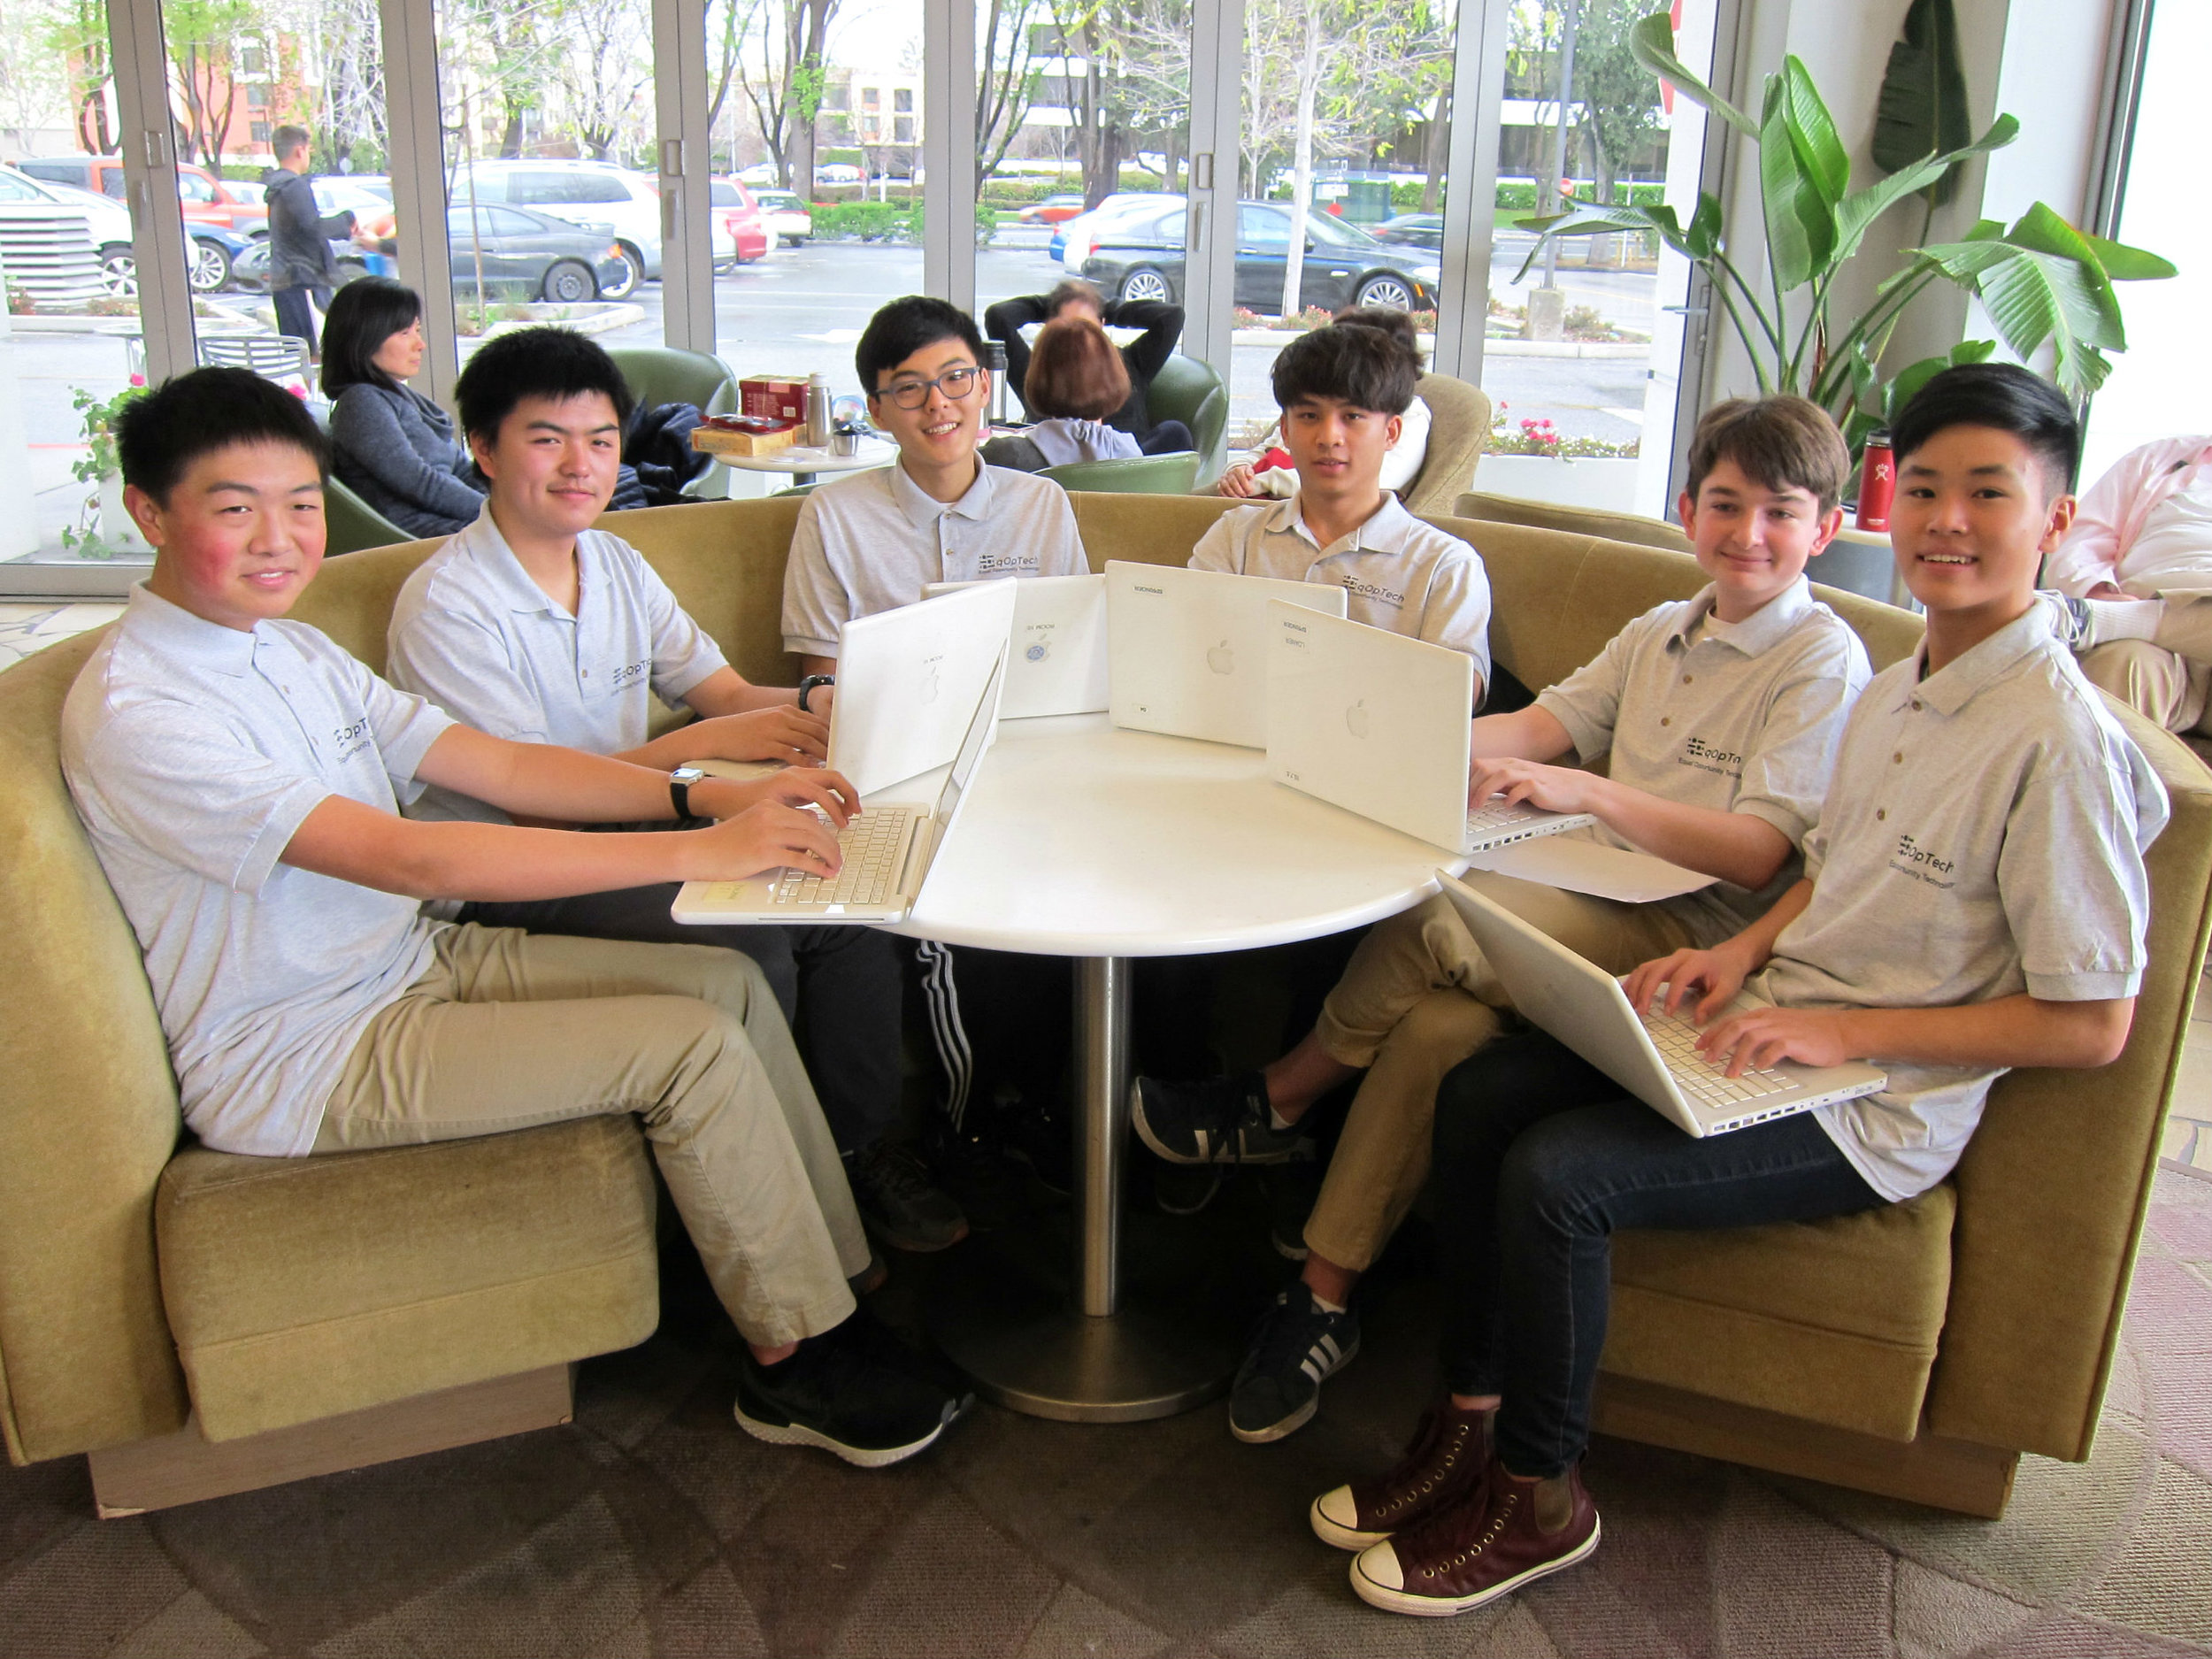 Laptop refurbishing workshop - Eric Che, Kevin Gao, Daniel Lim, Nate Latif, Trevor Smith, Cedric Chan (left to right)